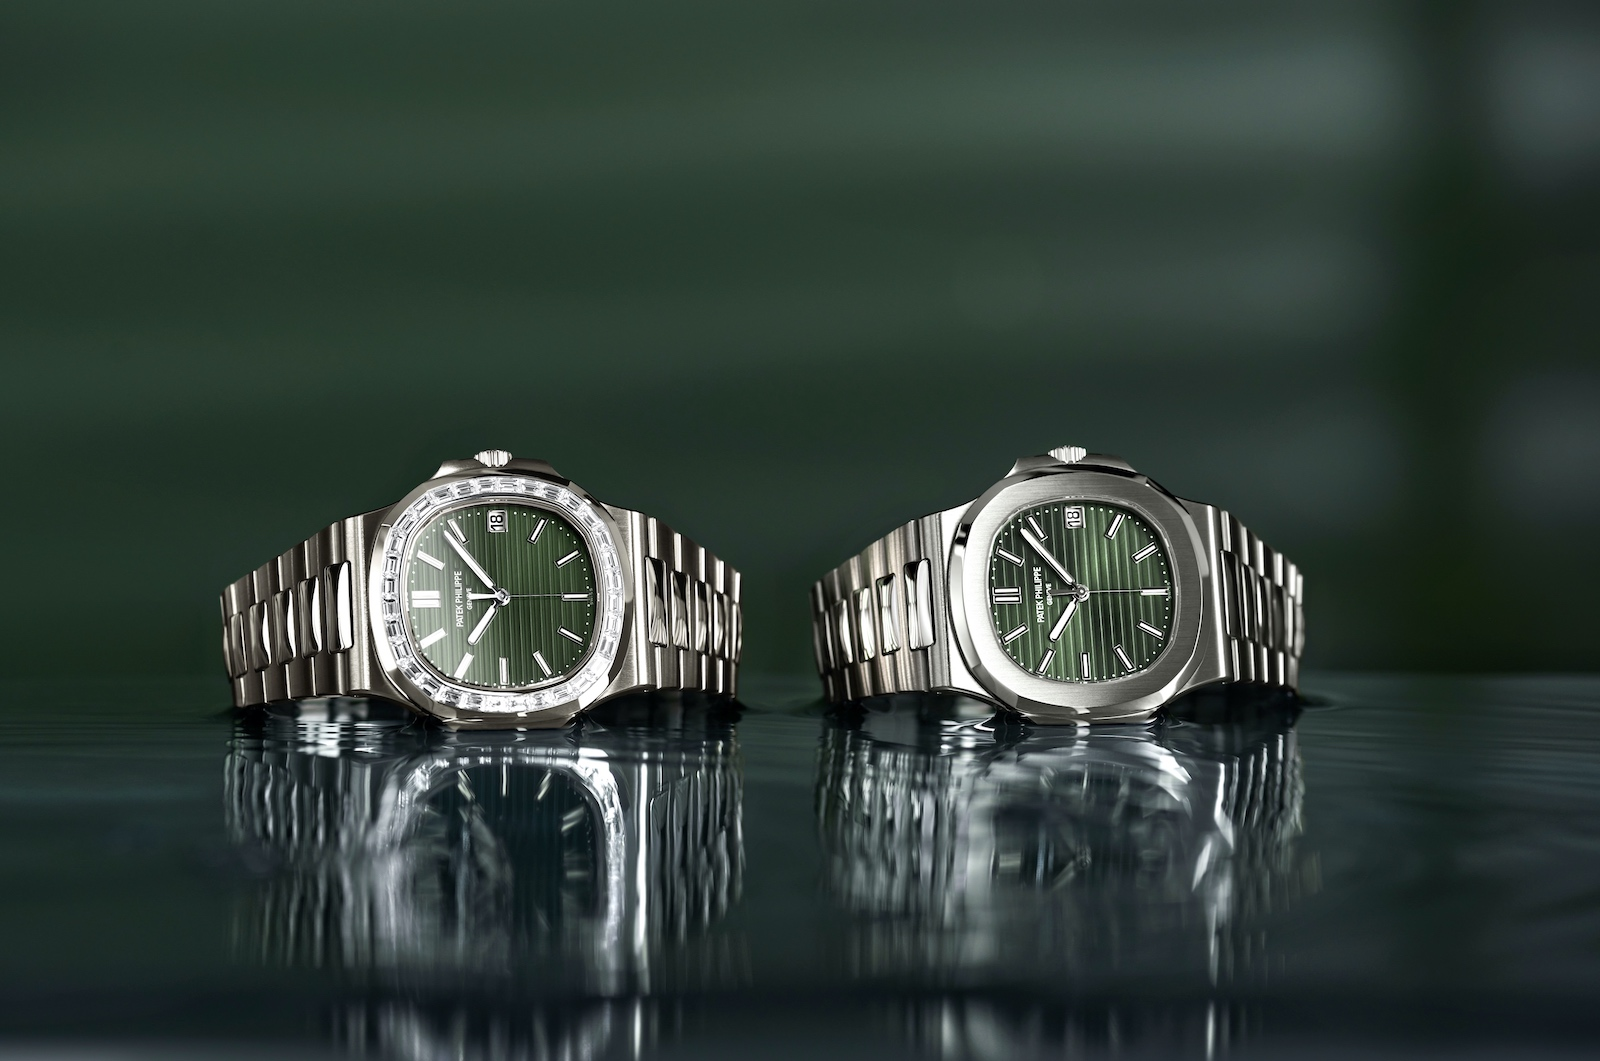 Patek Philippe en Watches and Wonders 2021 - Nautilus duo verde